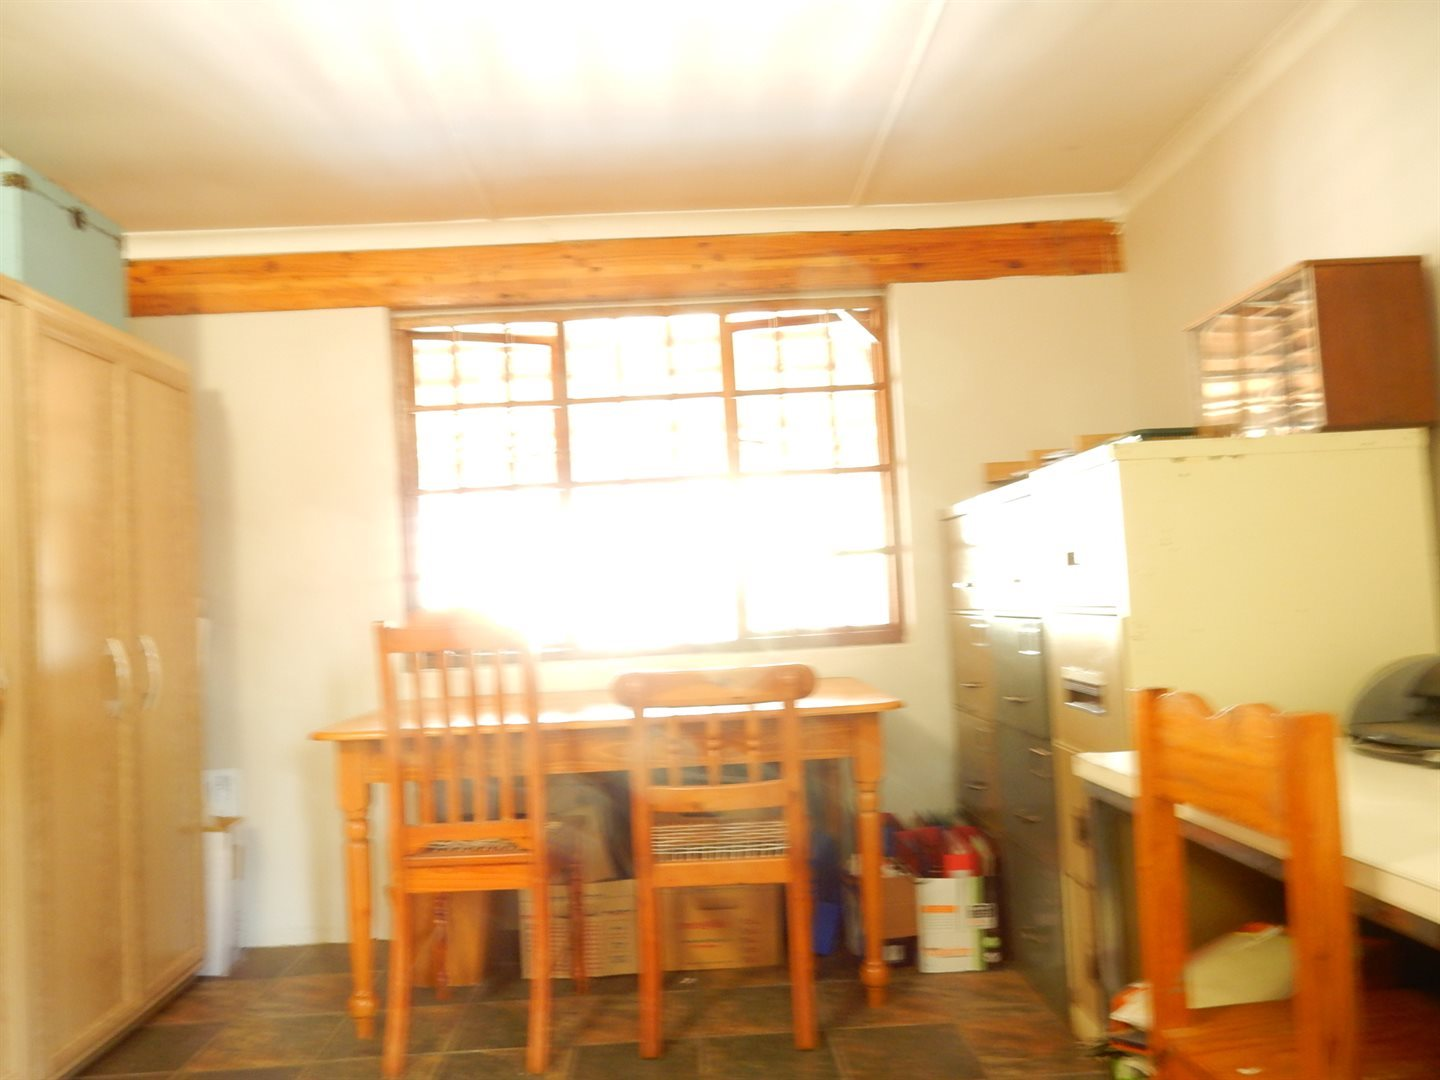 Kwambonambi property for sale. Ref No: 13494073. Picture no 3